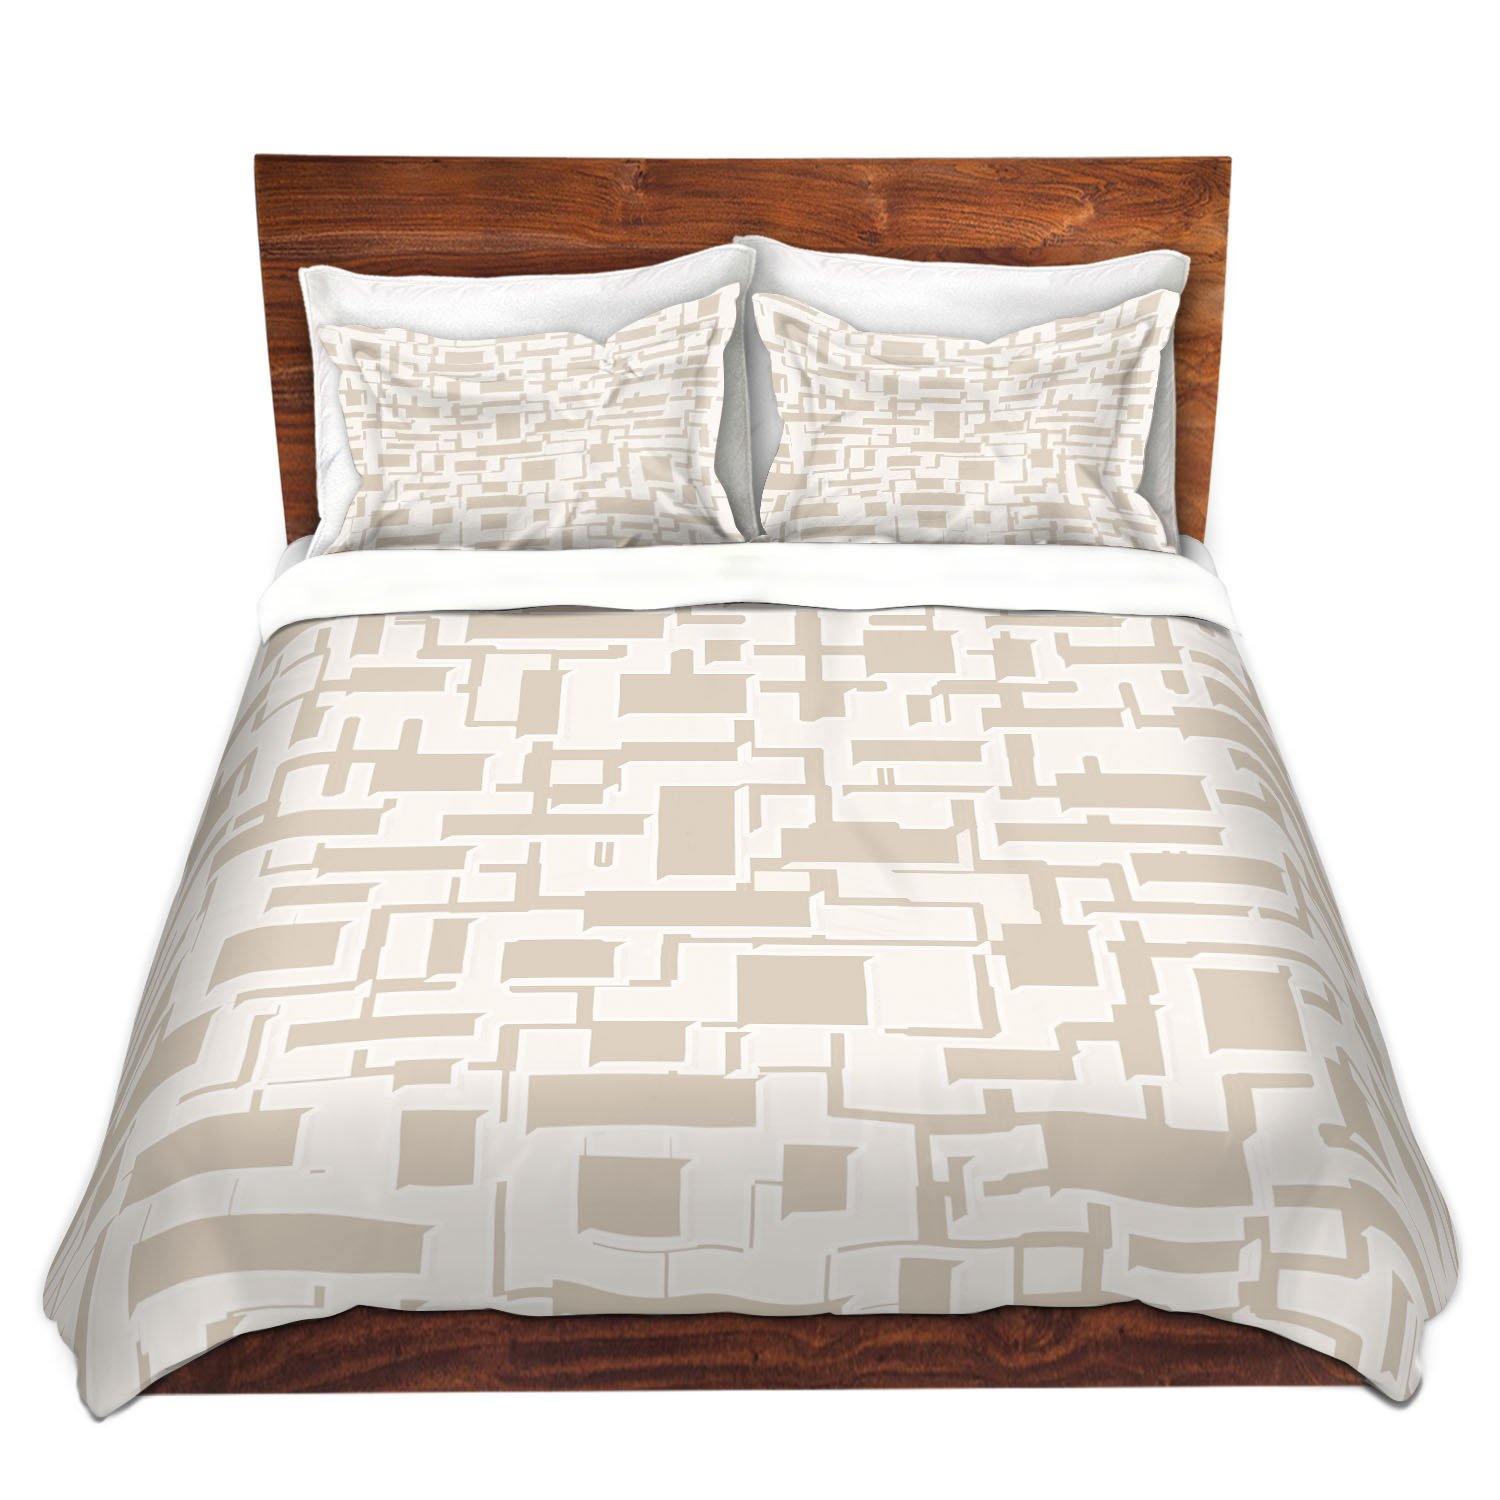 "DiaNoche Designs Duvet Cover Brushed Twill Twin, Queen, King SETs by Susie Kunzelman Mid Century Cubed Simple King Duvet ONLY 88"" x 104"""